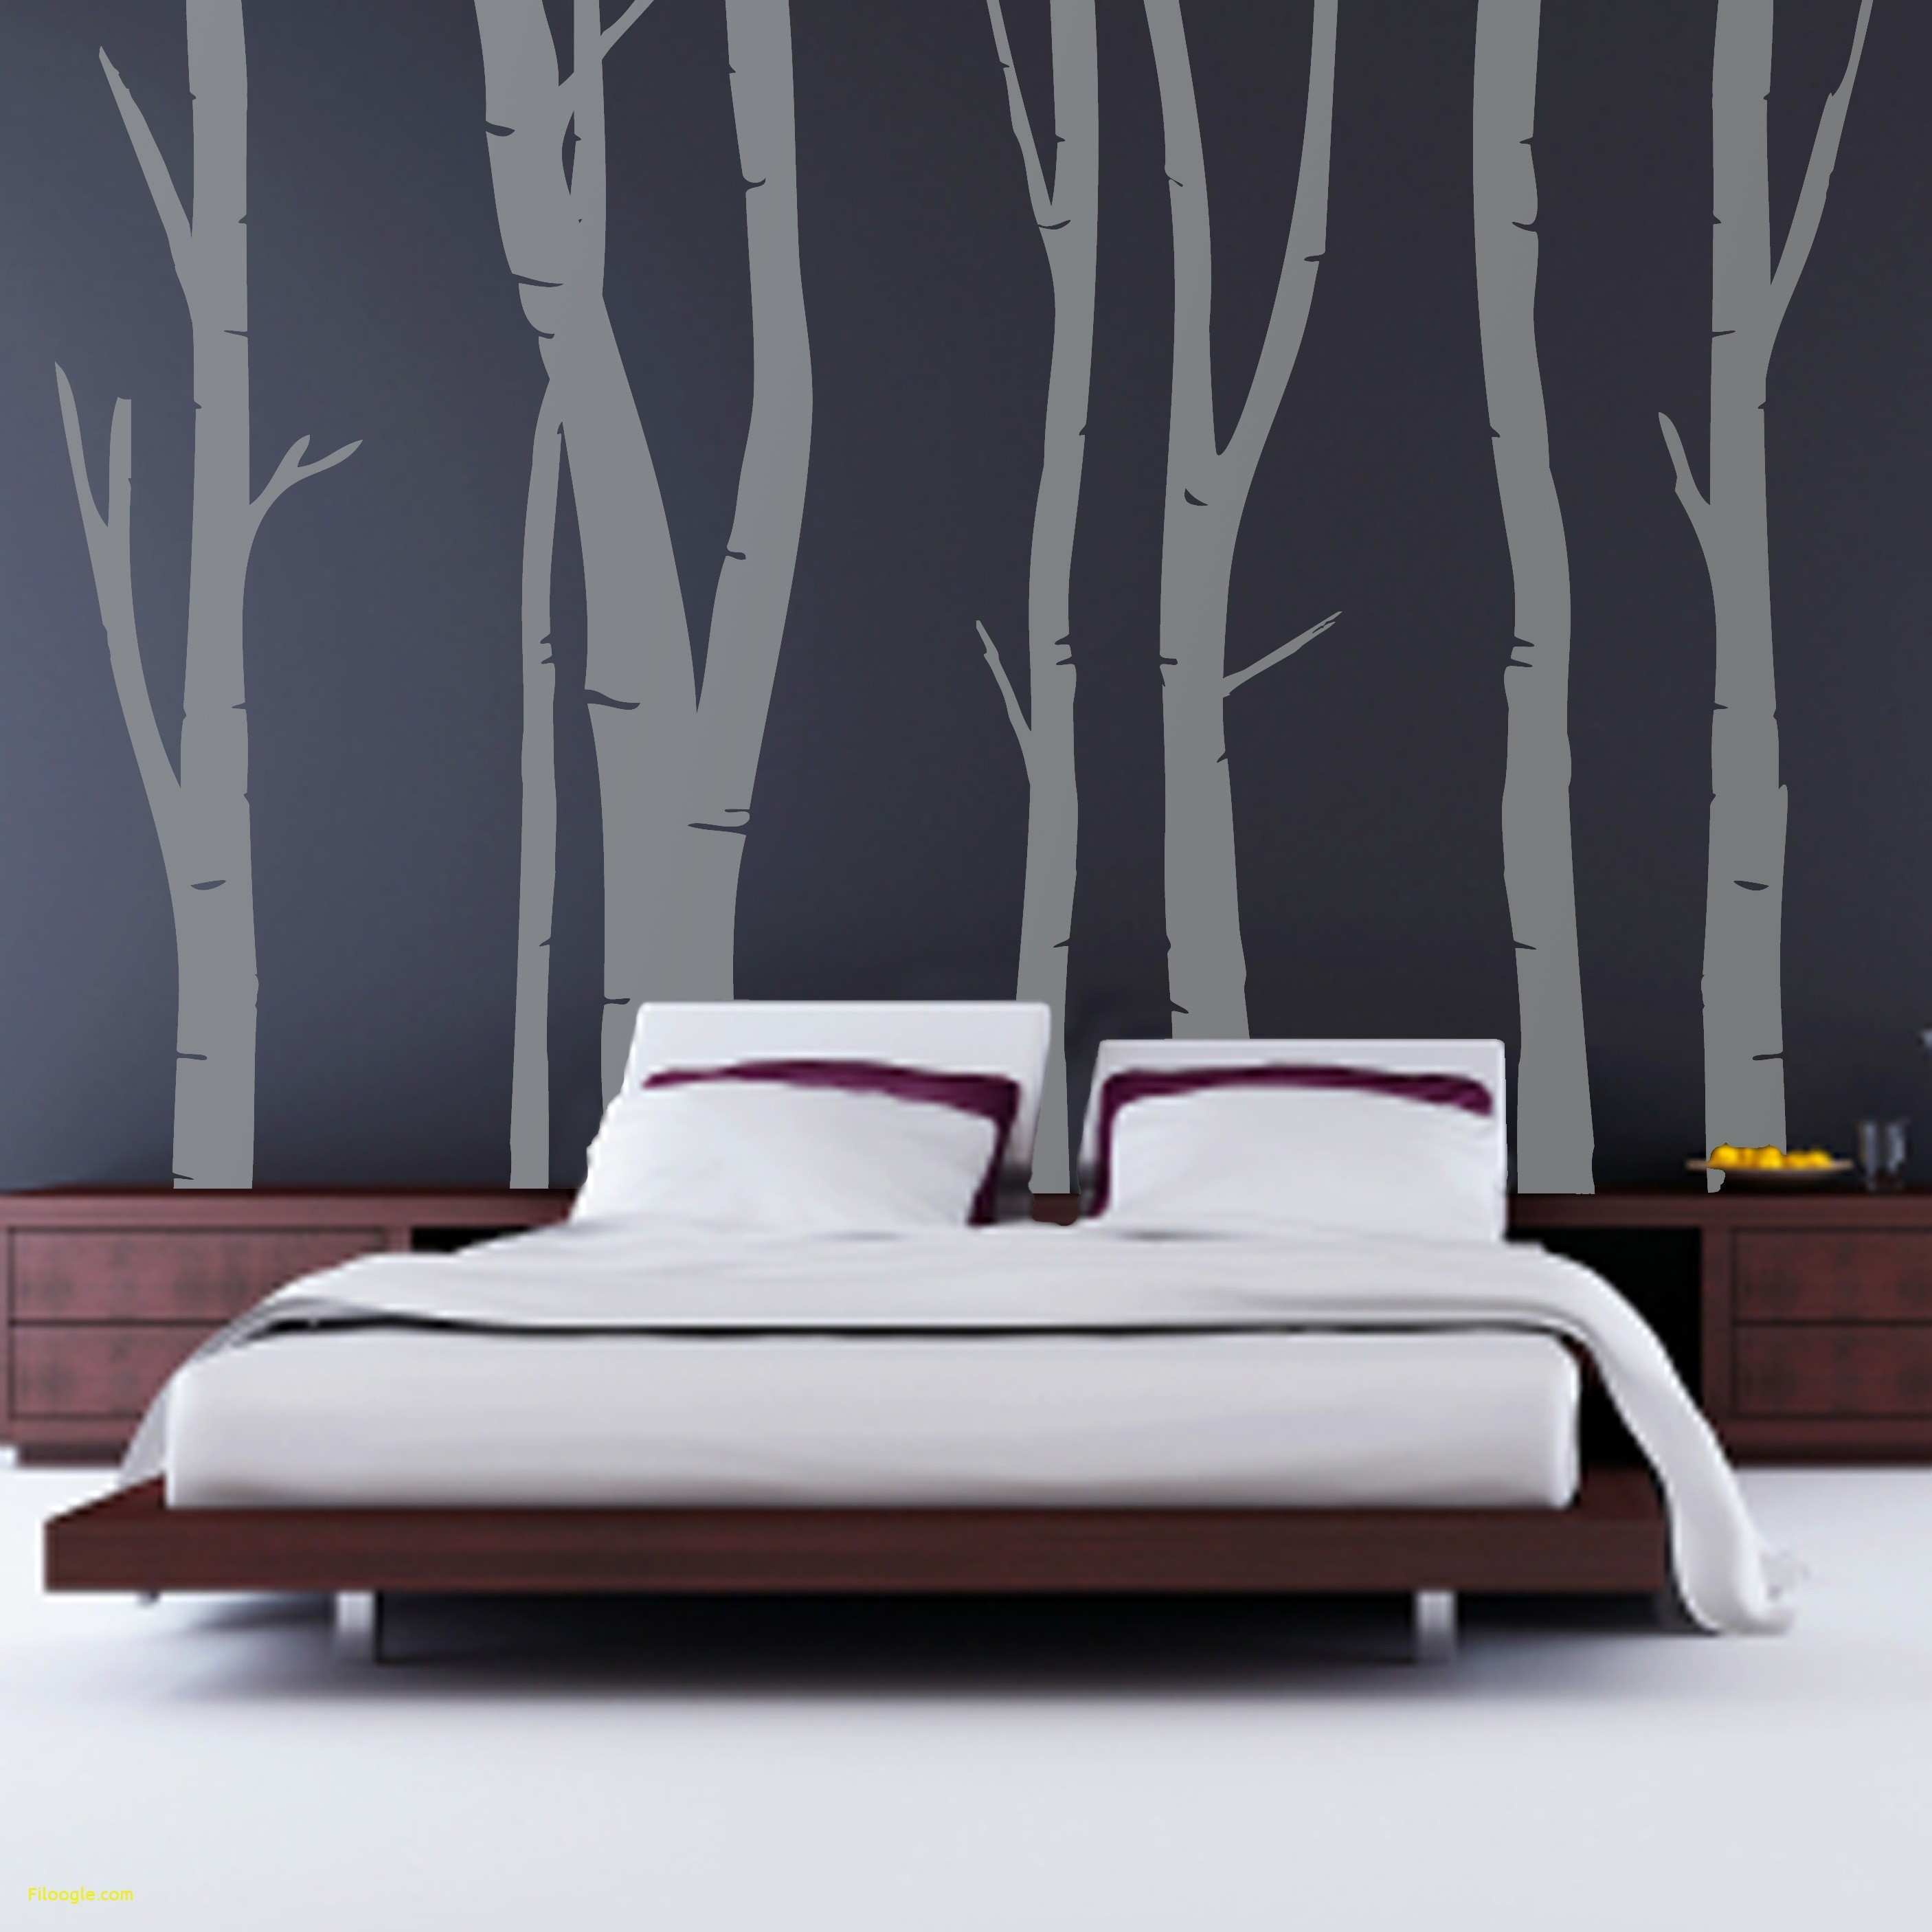 Home Decor Guwahati Luxury Wall Decals for Bedroom Unique 1 Kirkland